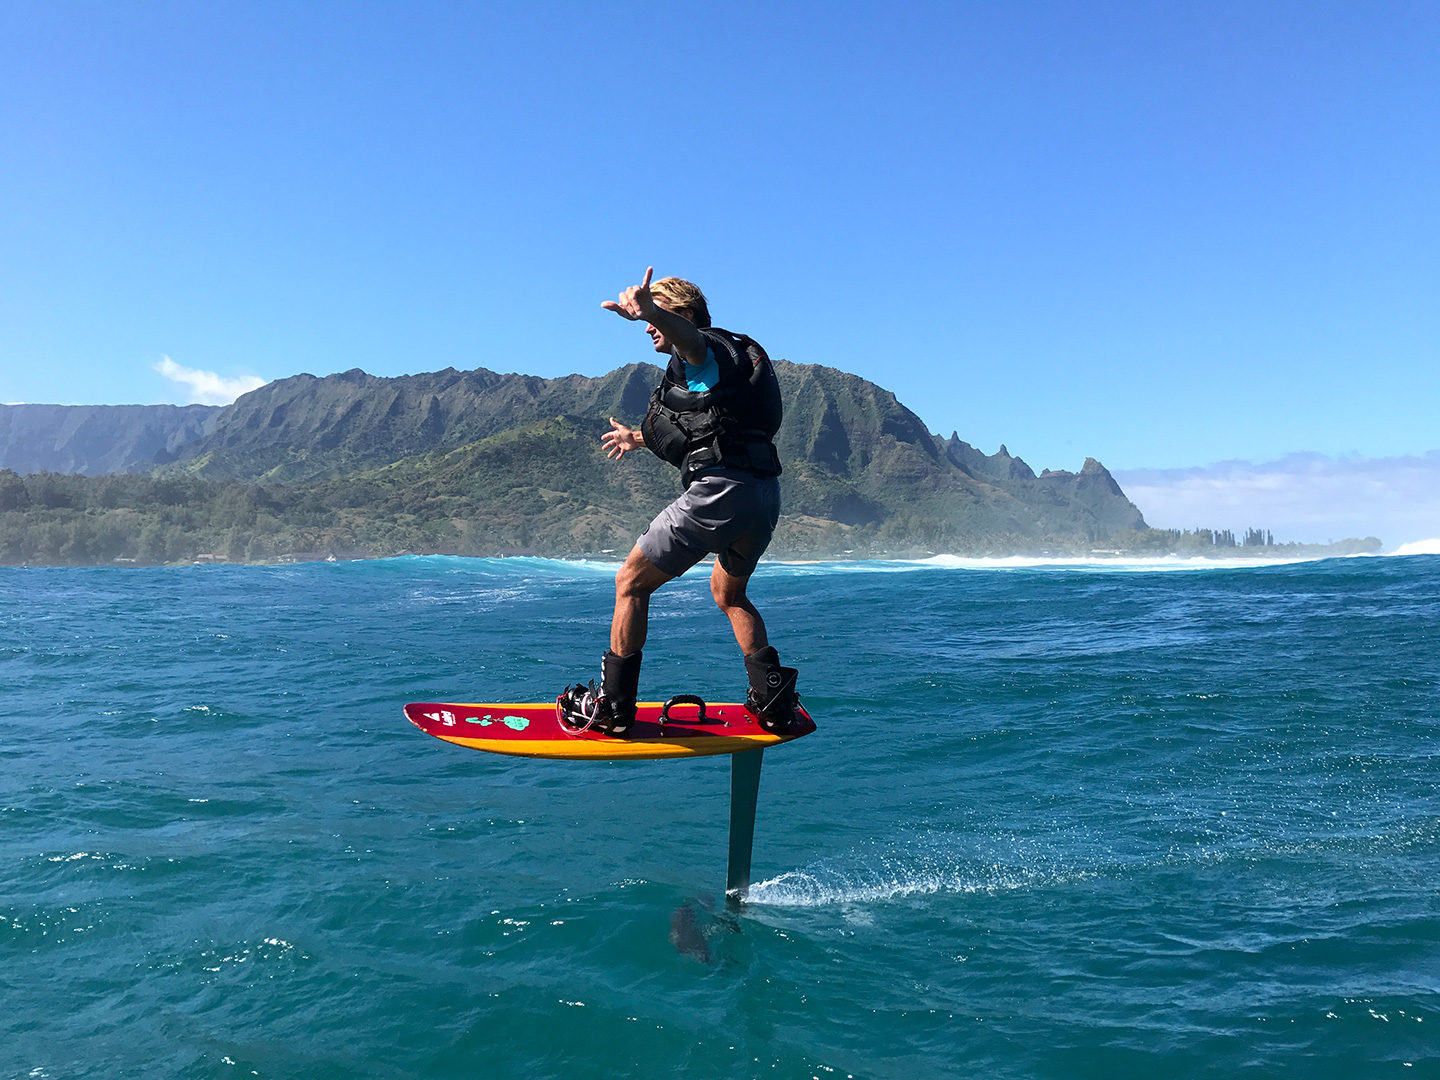 Laird Hamilton on the Meaning of Life